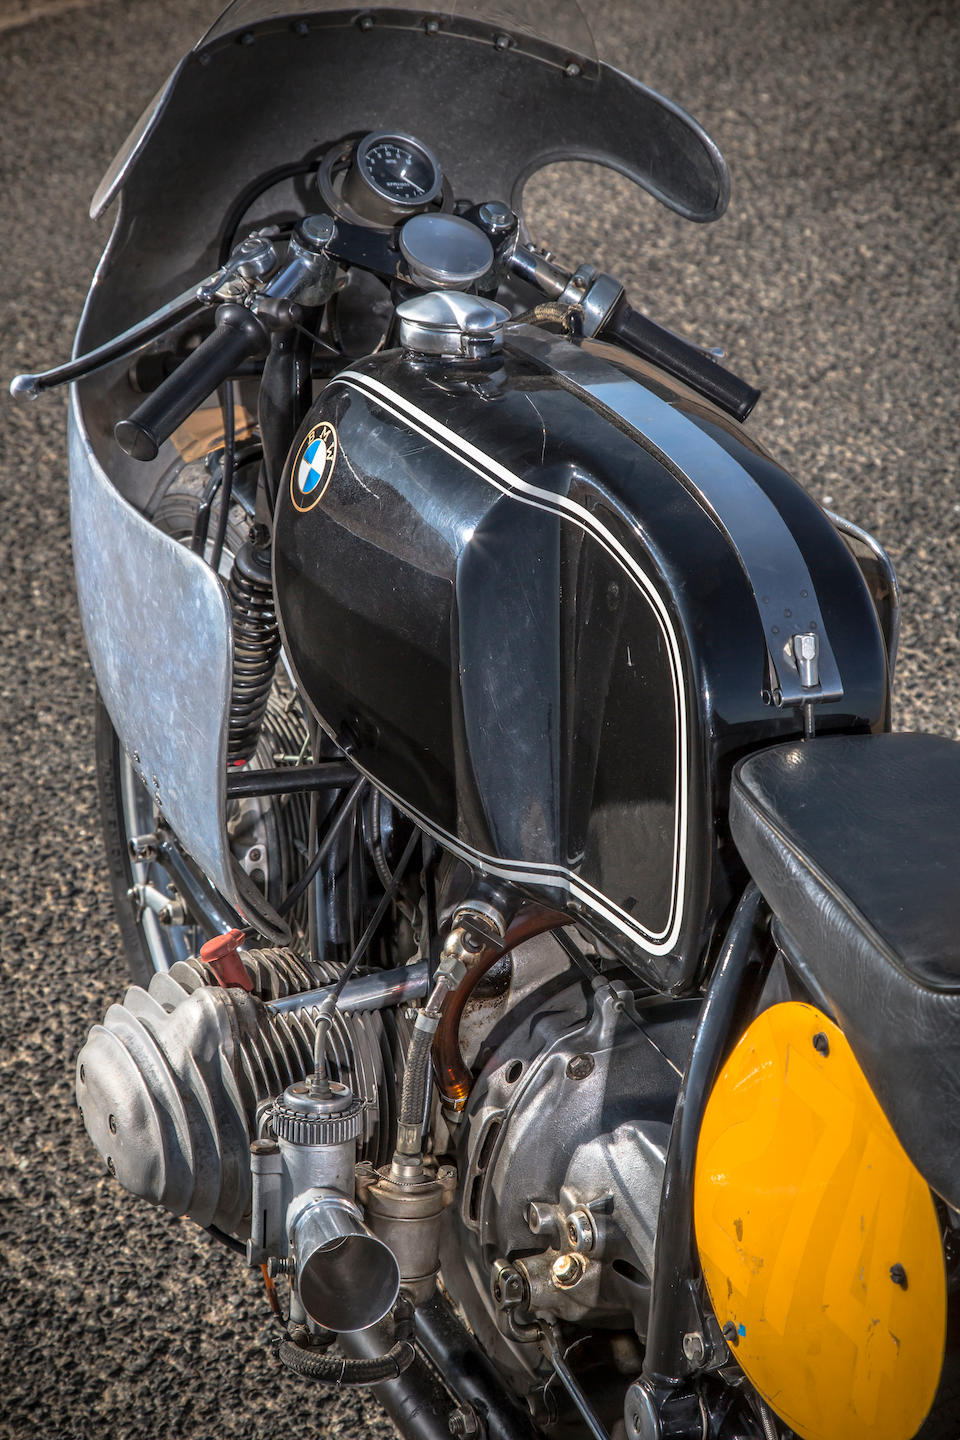 1956 BMW Rennsport RS54 with 'Bartl' Fairing  Chassis no. 256014 Engine no. 549014